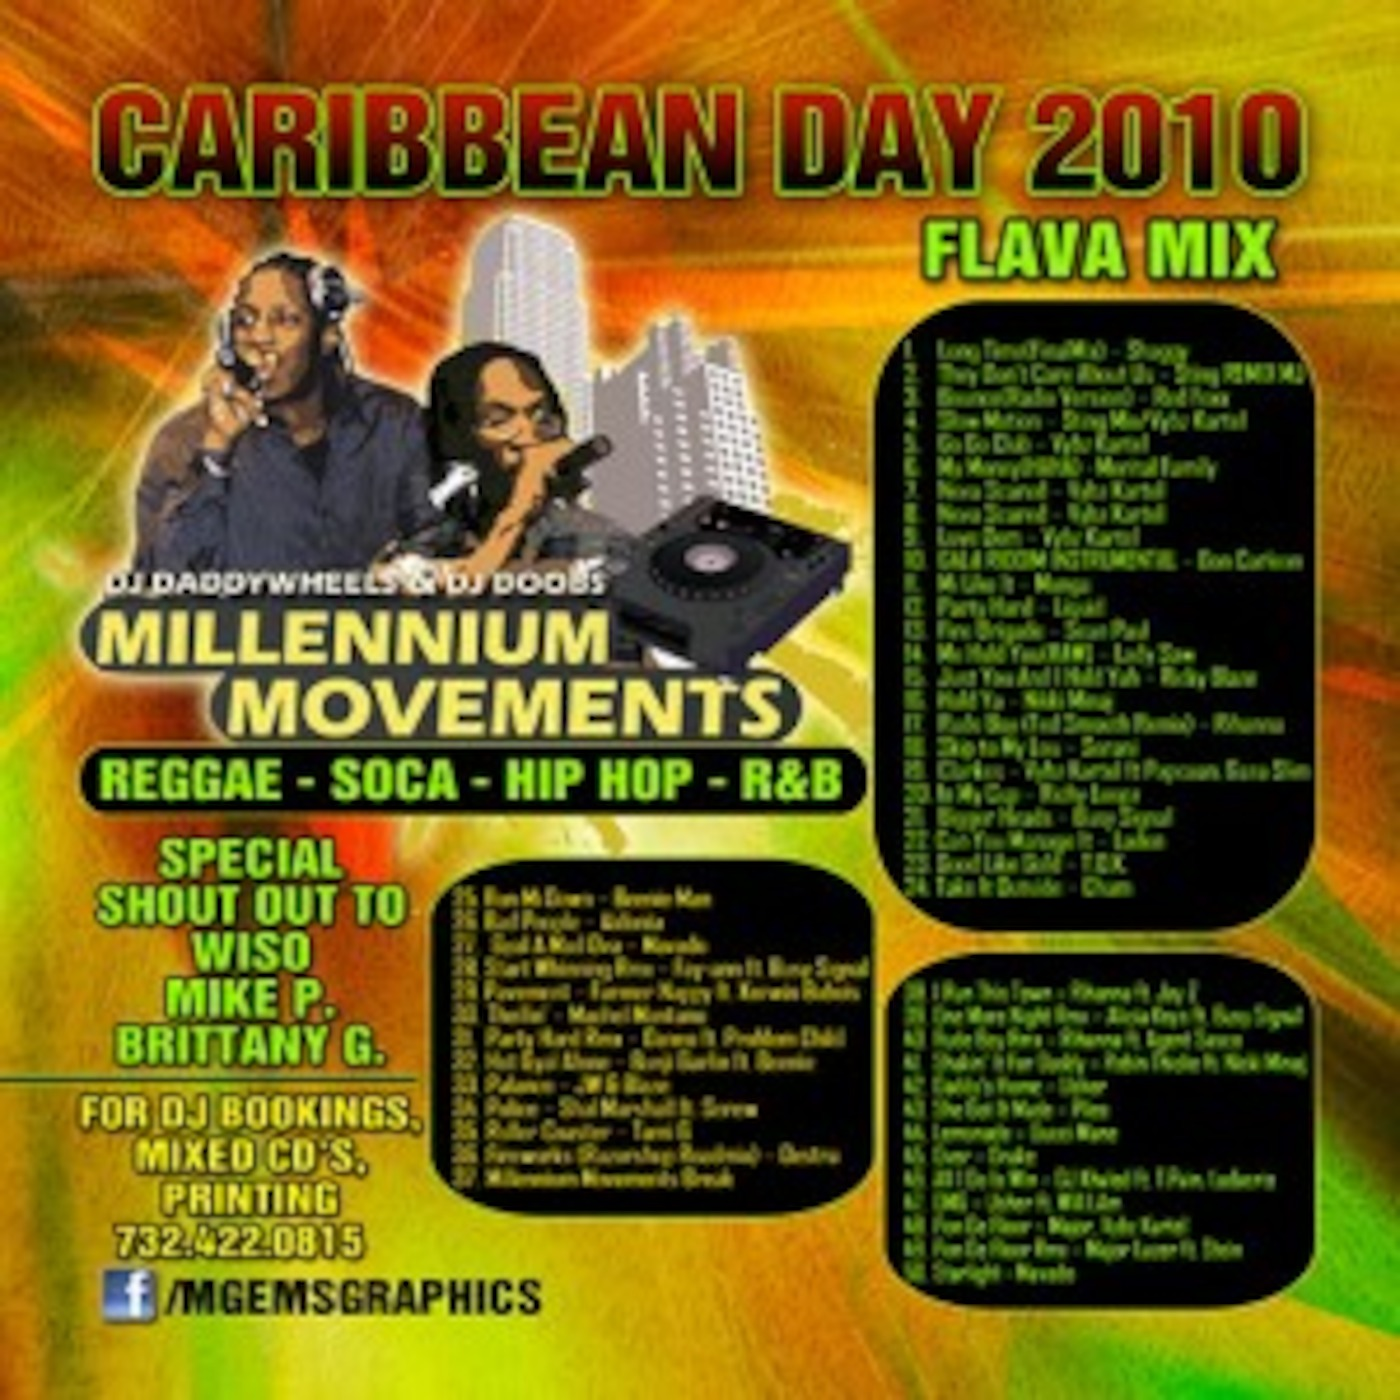 Caribbean Day FLAVA MIX - REGGAE | SOCA | HIP HOP | R&B - DJ